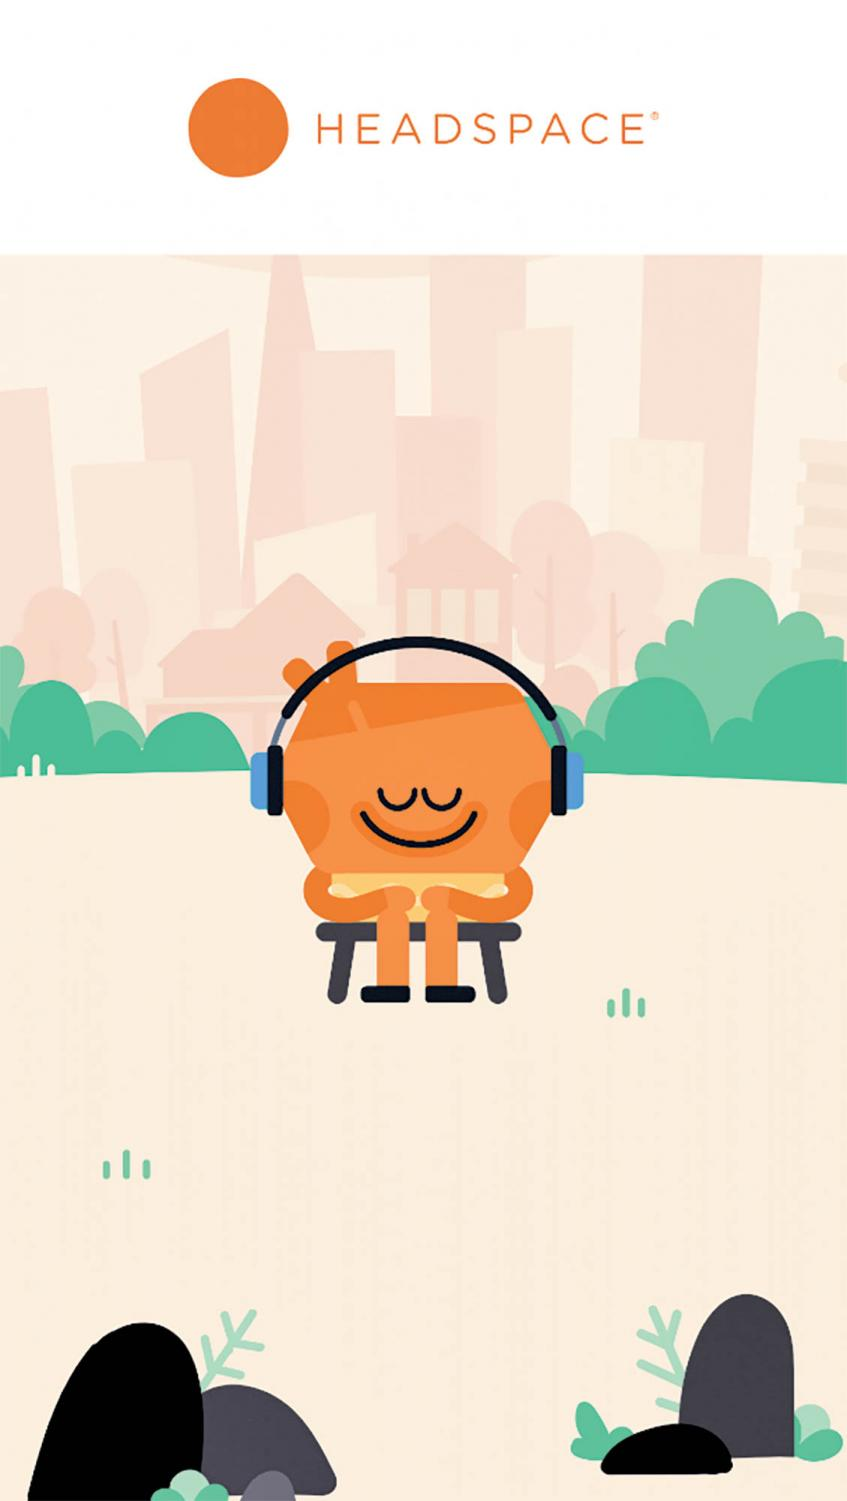 'Headspace' launched in 2010.